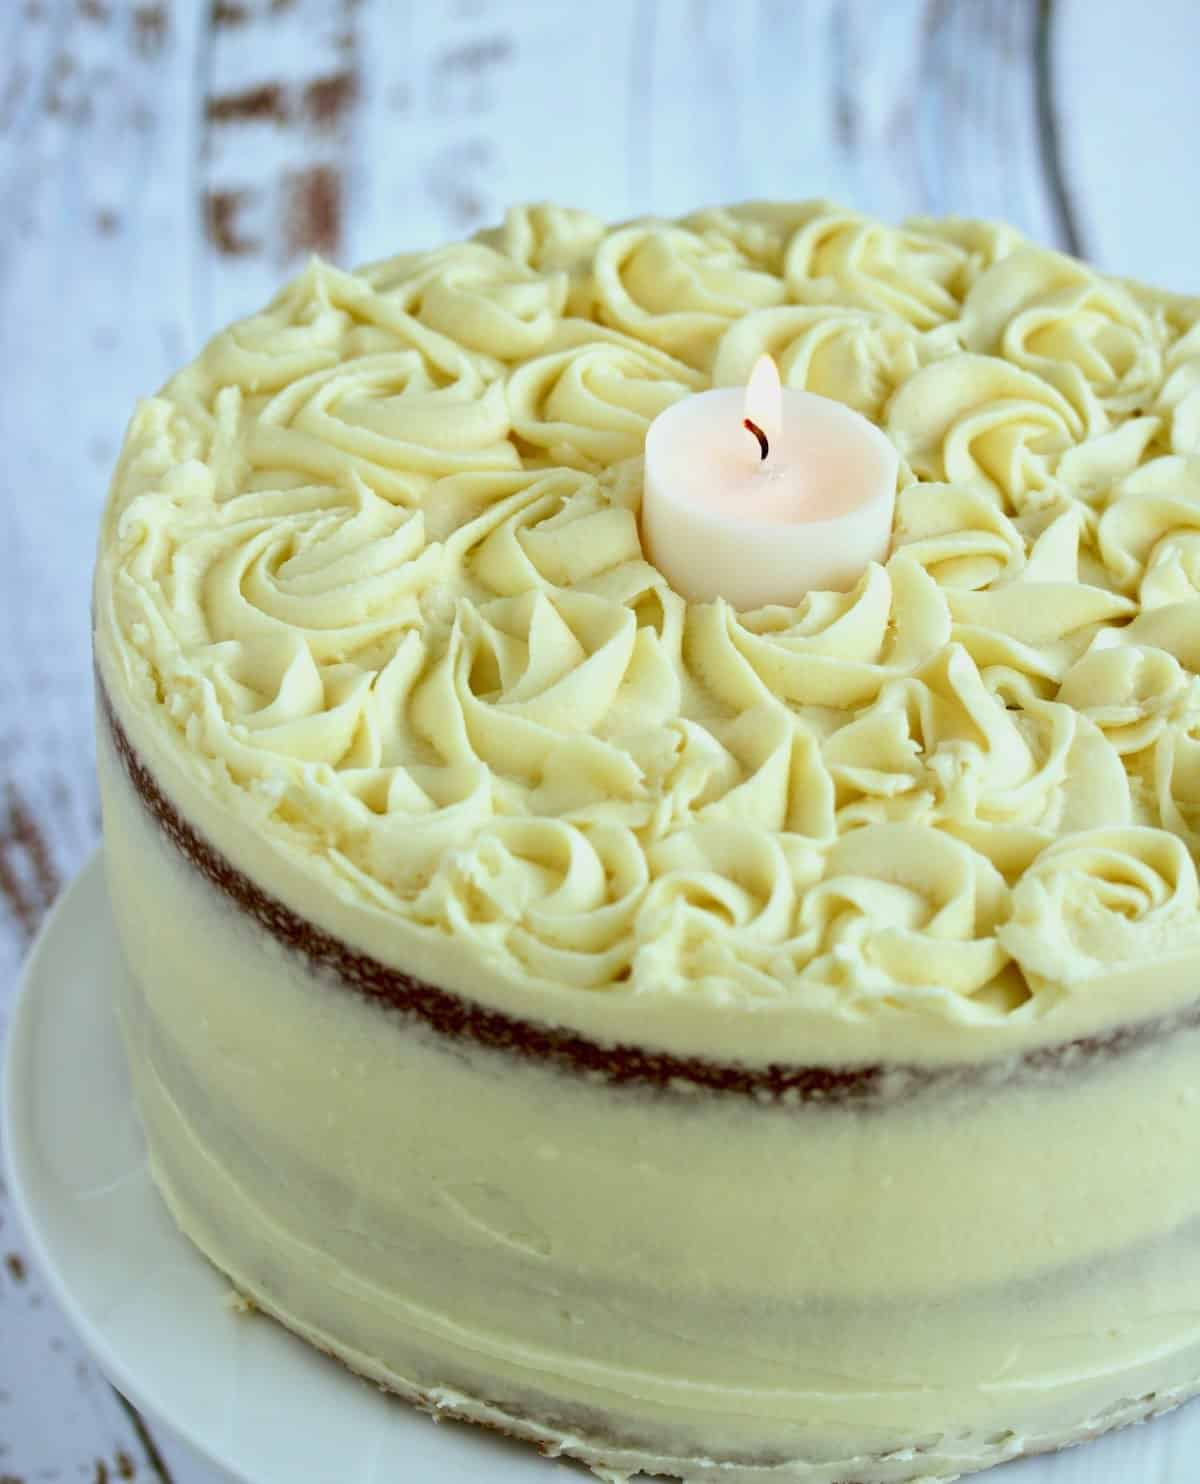 buttermilk cake with a candle to celebrate a life